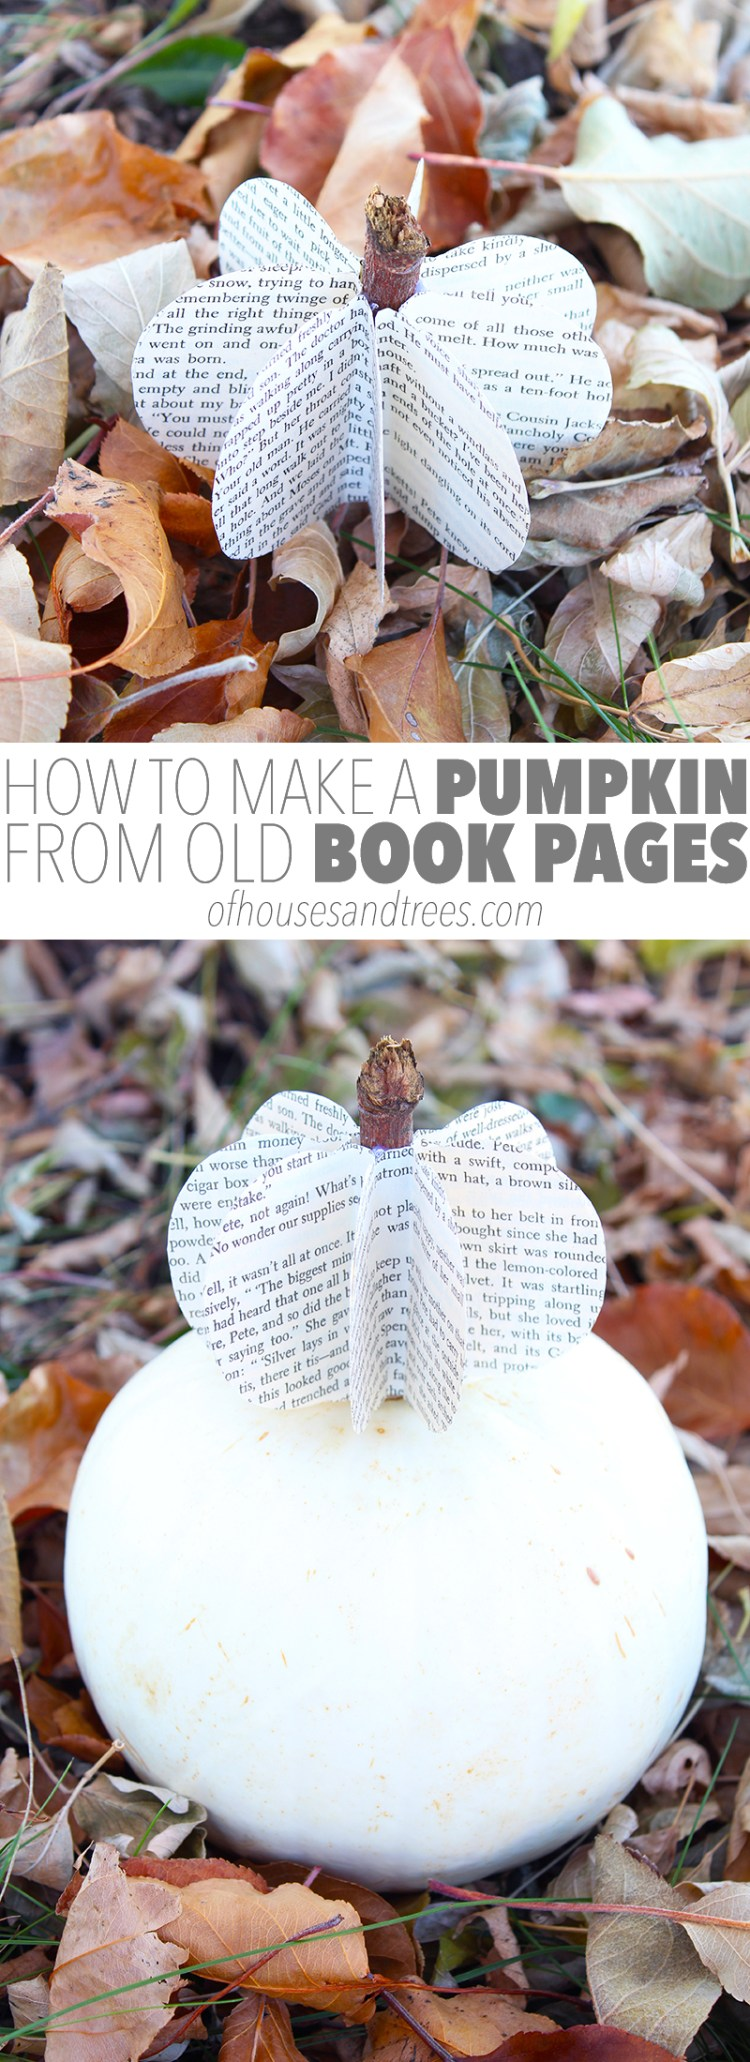 Fall is a time of colourful leaves, crisp air, harvests and... DIY pumpkin crafts! Here's how to make a pumpkin from old book pages. Happy Autumn!